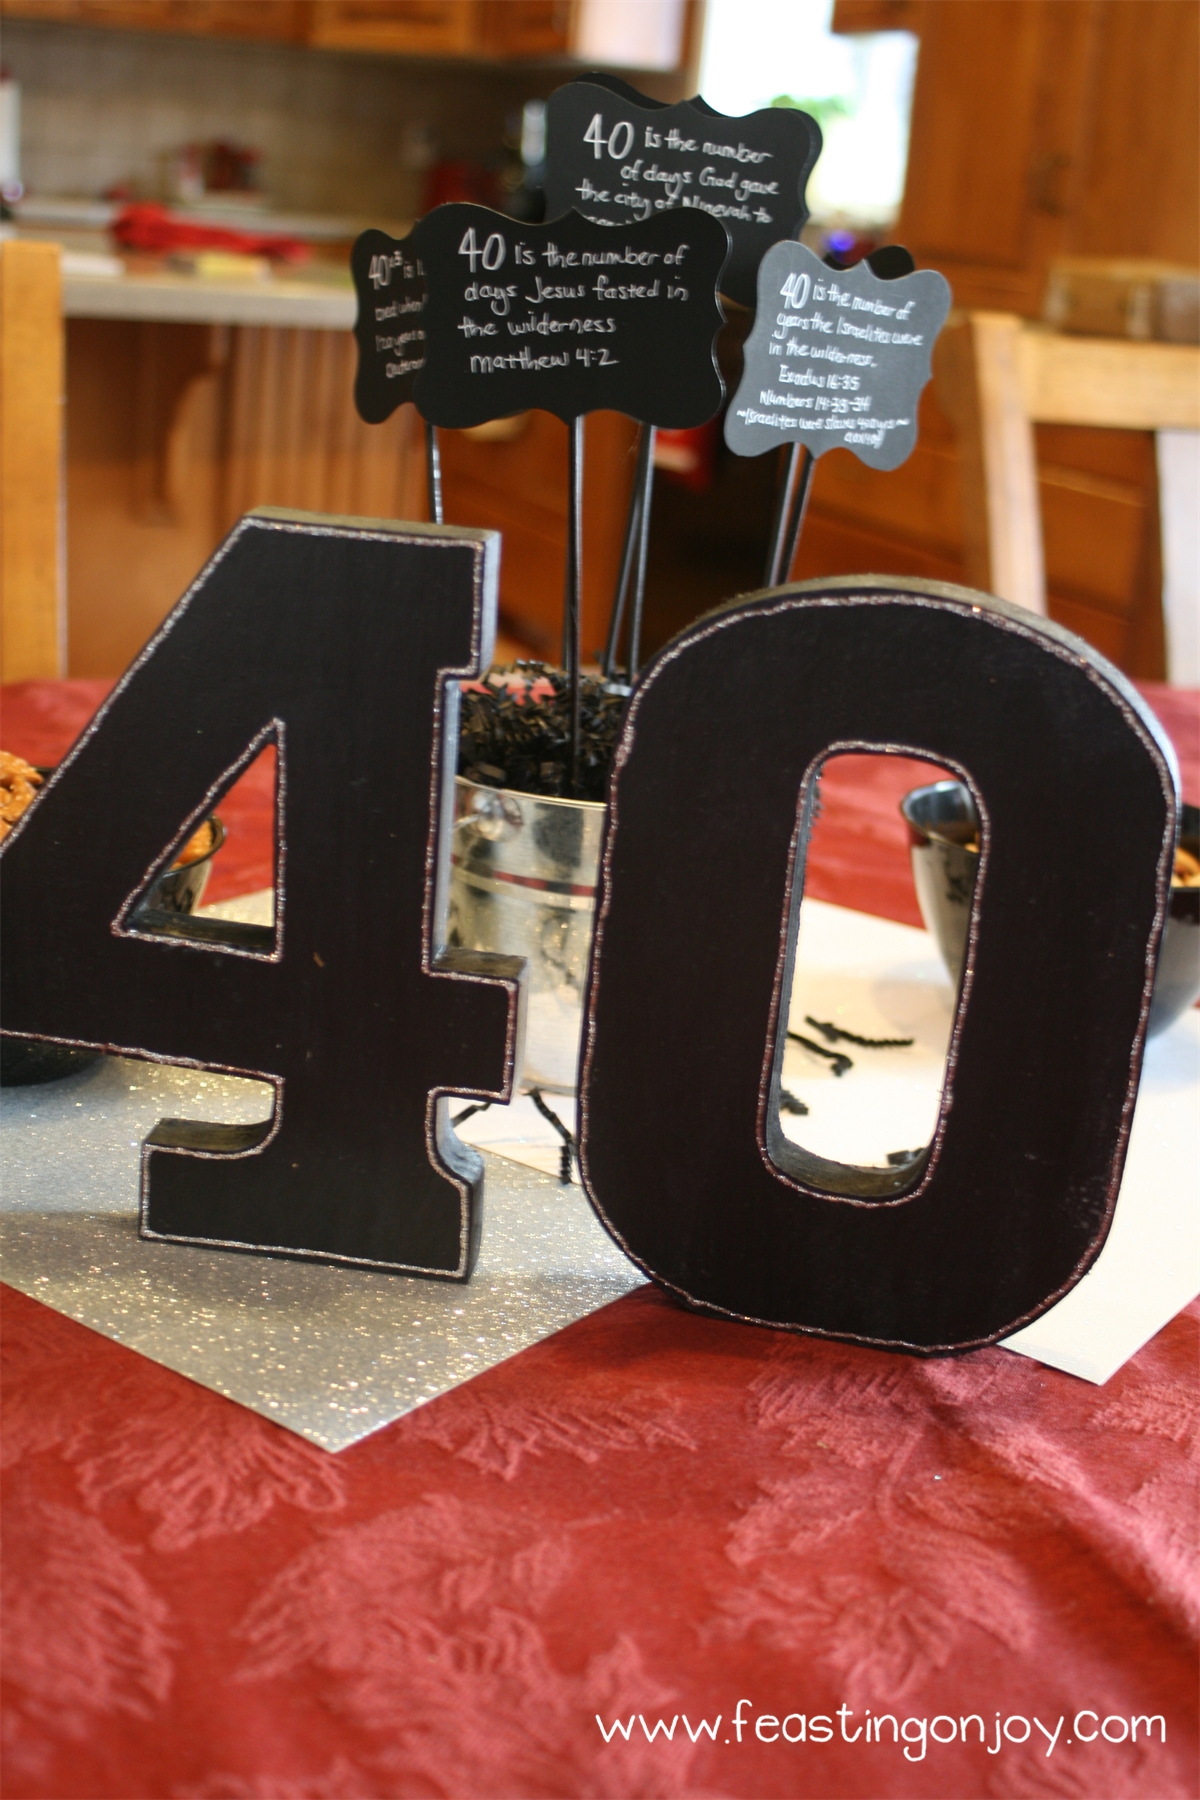 A Christian Manly 40th Birthday Party free Download